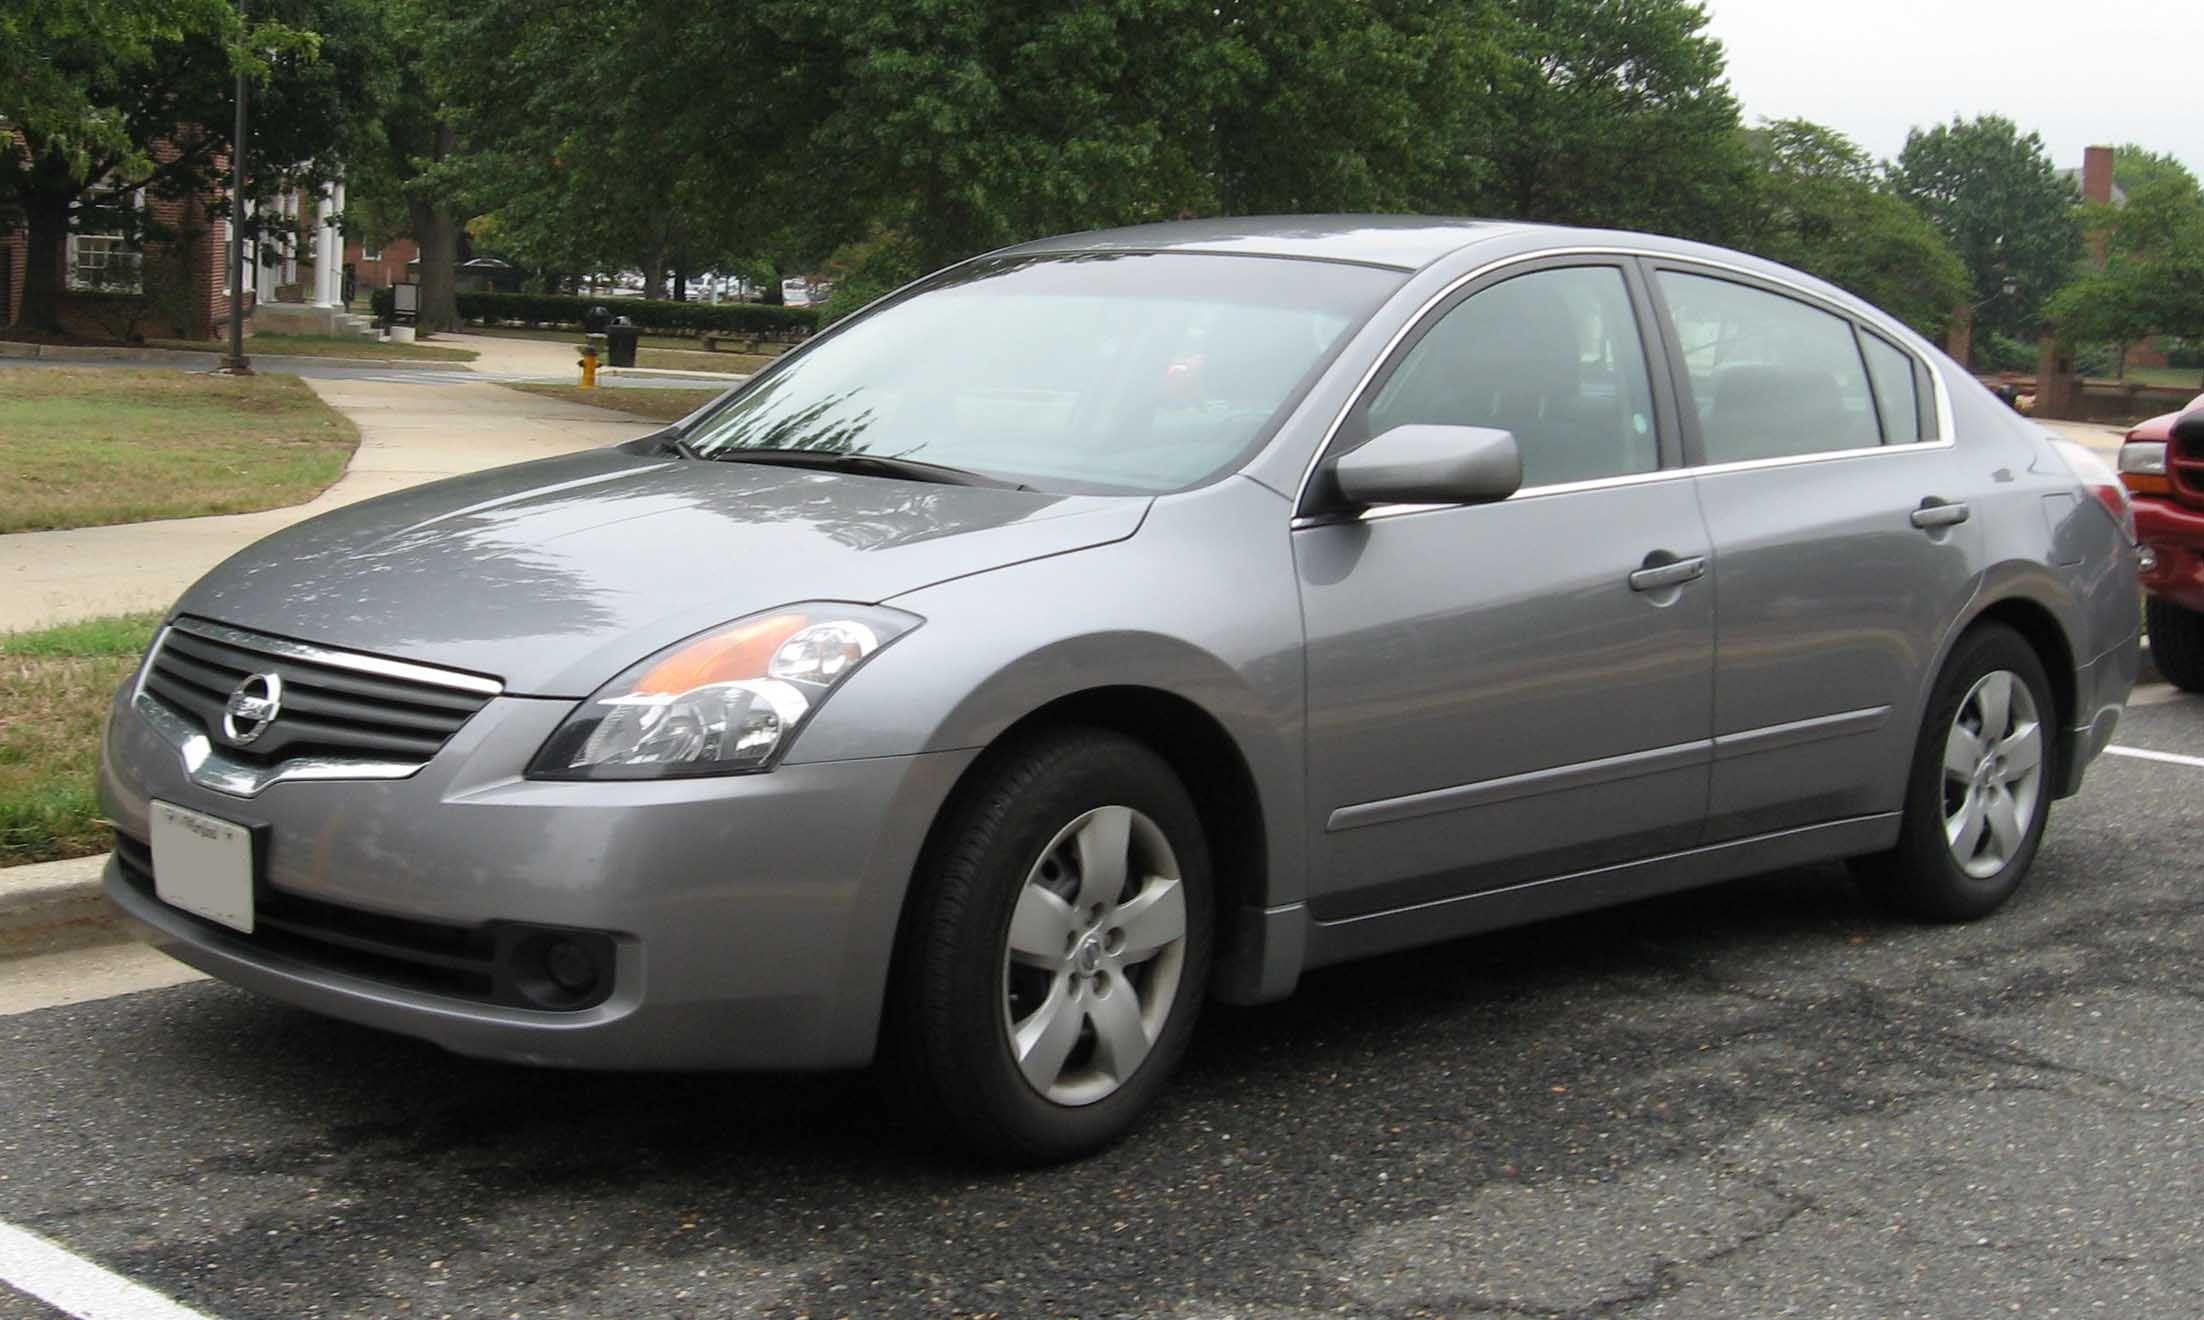 gray nissan altima nissan pinterest nissan altima and nissan rh pinterest com nissan altima 2007 owner's manual 05 Nissan Altima